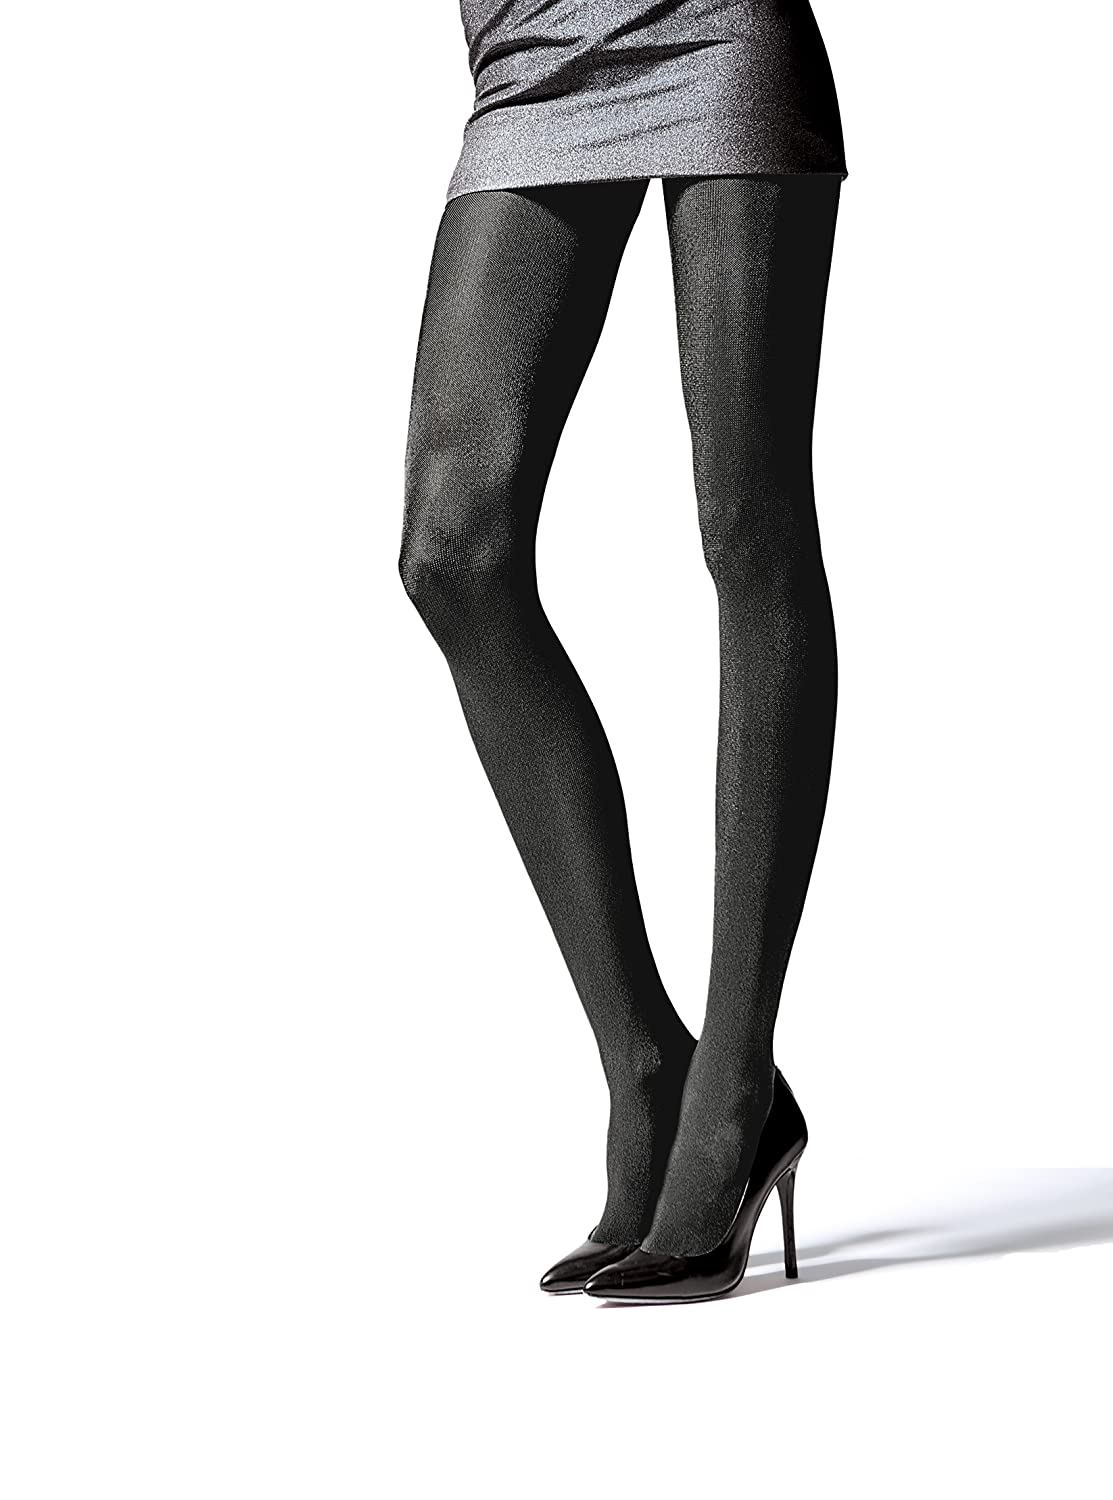 a346bf89f683f ... Glossy Metallic Shiny Silver Gold Graphite Grey Black Evening Prom  Thicker New Year Party Plus Size Tights Pantyhose Hosiery T45:  Amazon.co.uk: Clothing